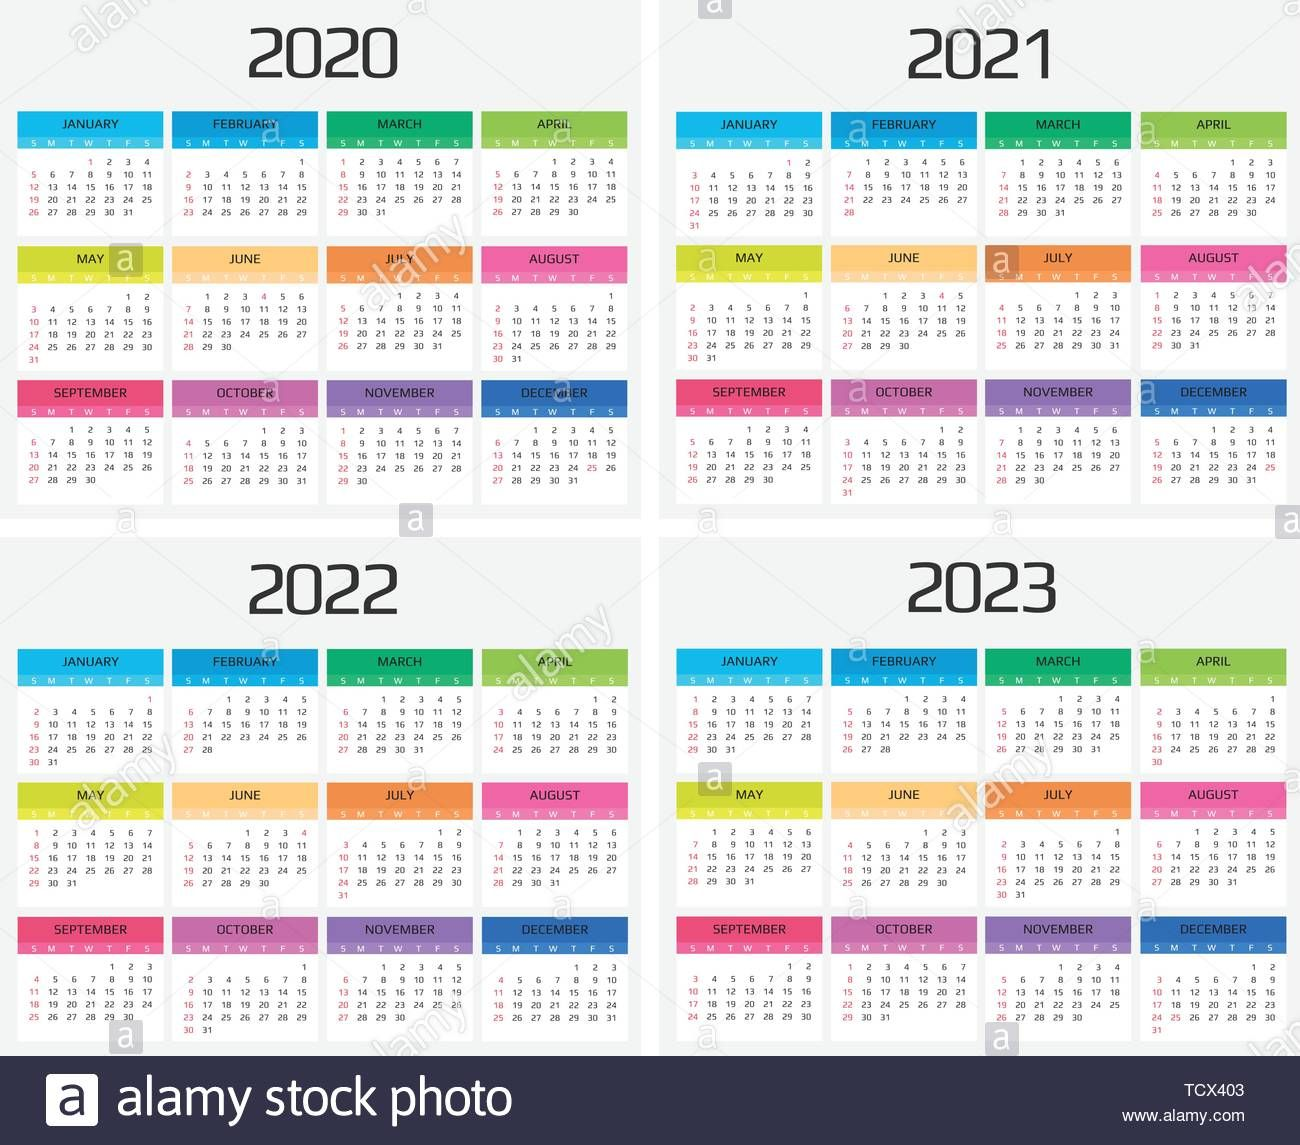 Download This Stock Vector Calendar 2020 2021 2022 2023 Template 12 Months Include Holiday Event Week Starts Holidays And Events Calendar Calendar 2020